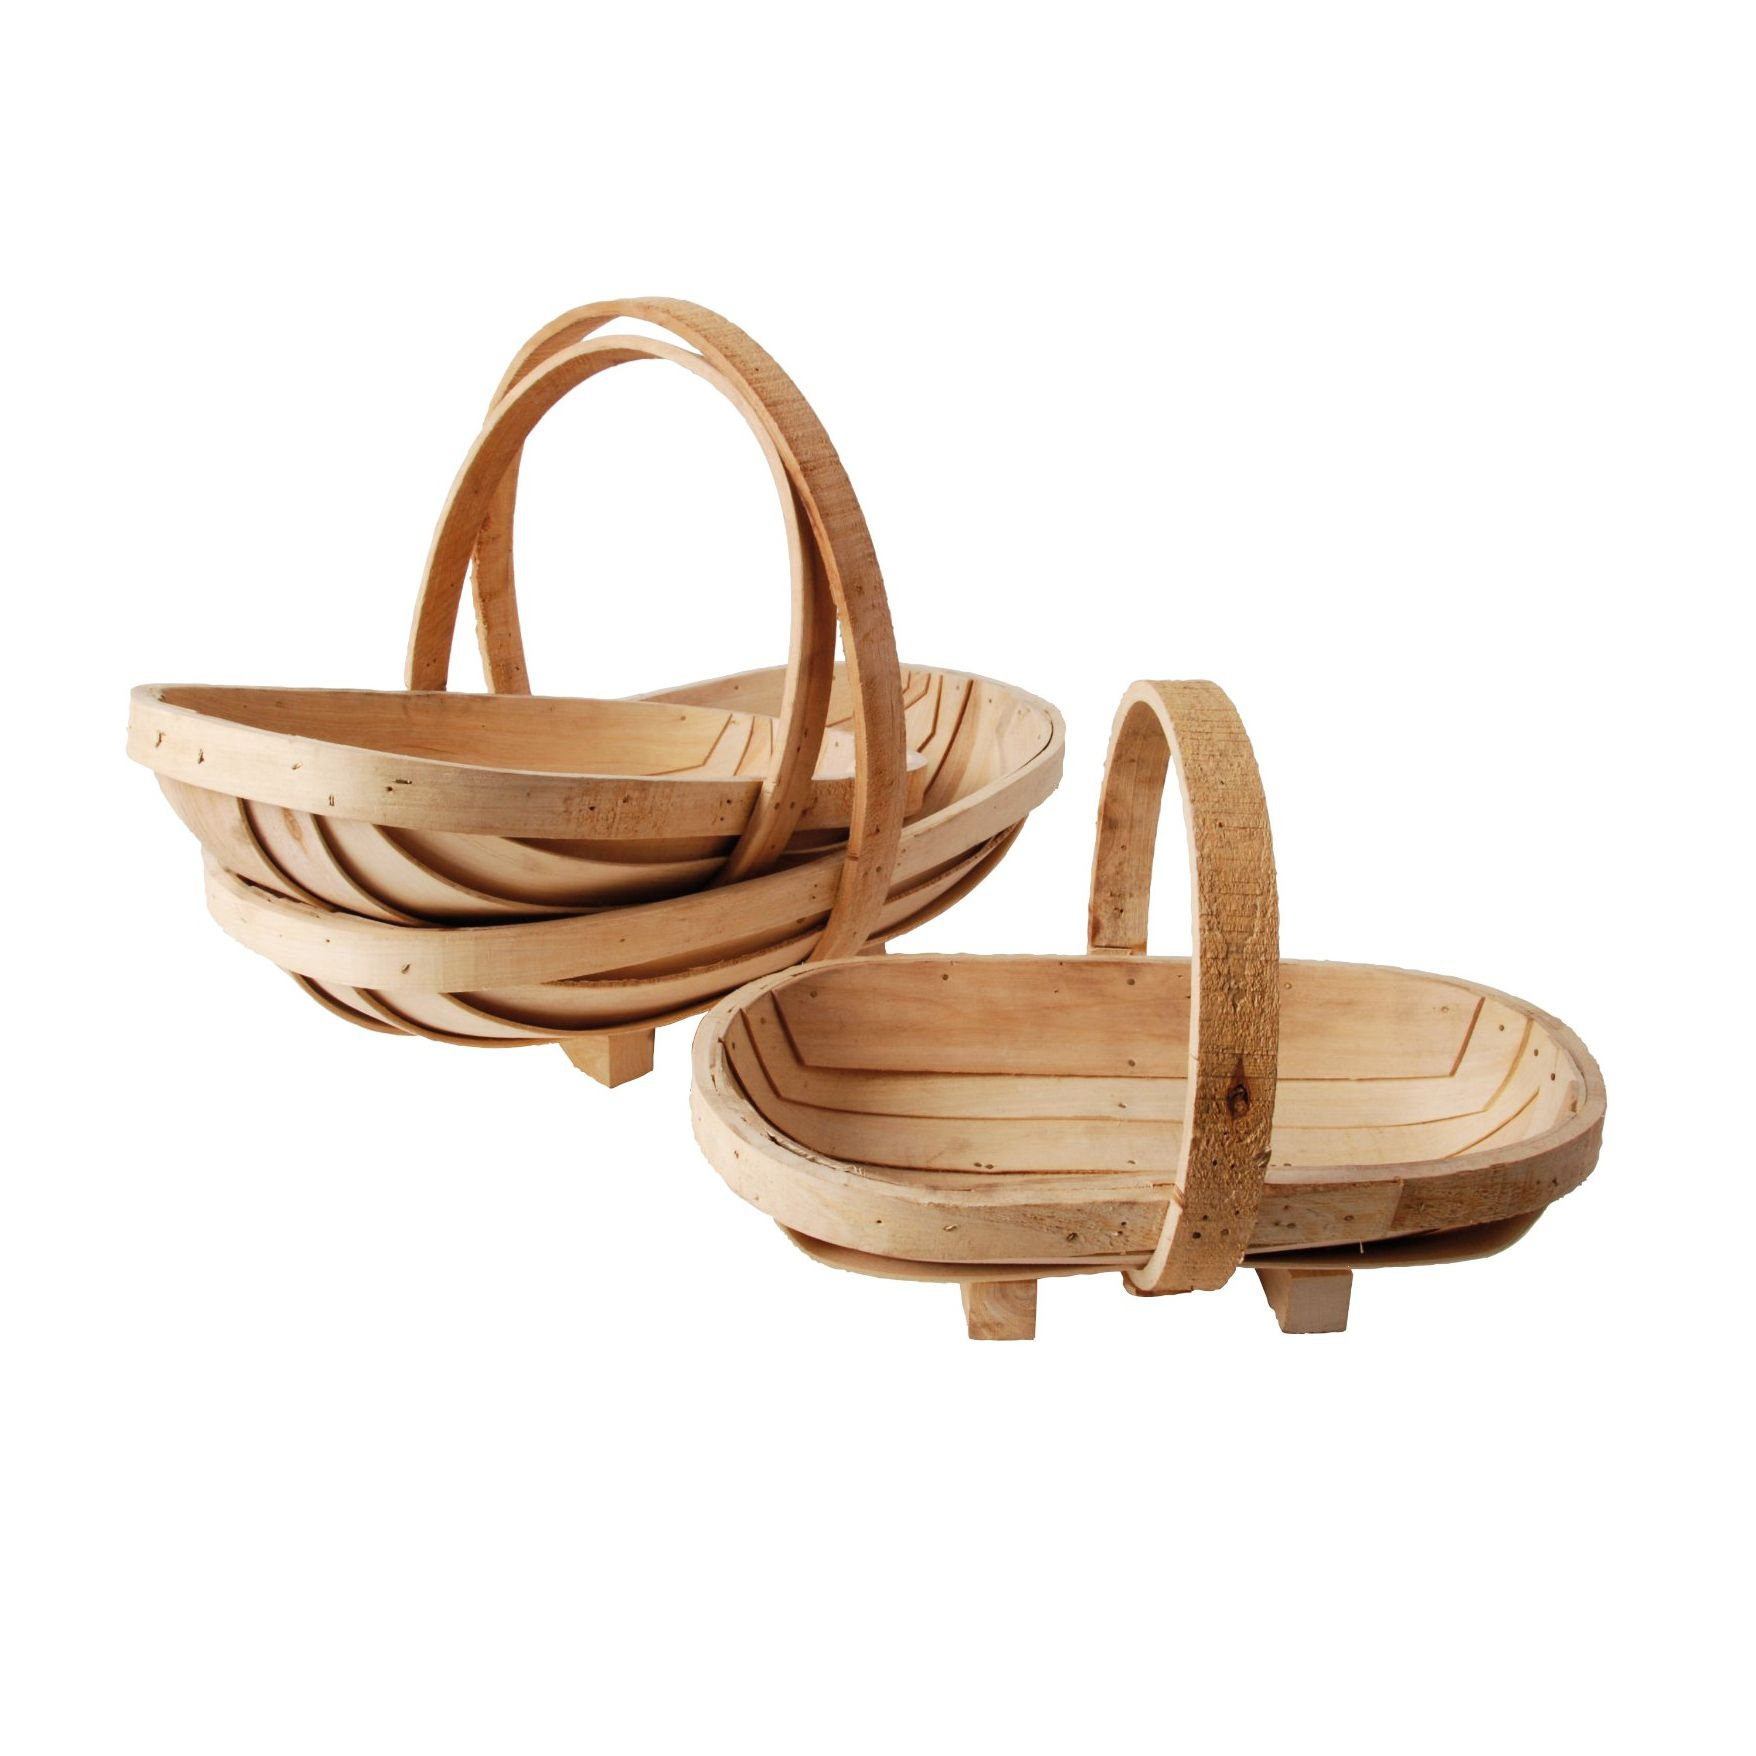 Victoria Baskets - Set of 3 |